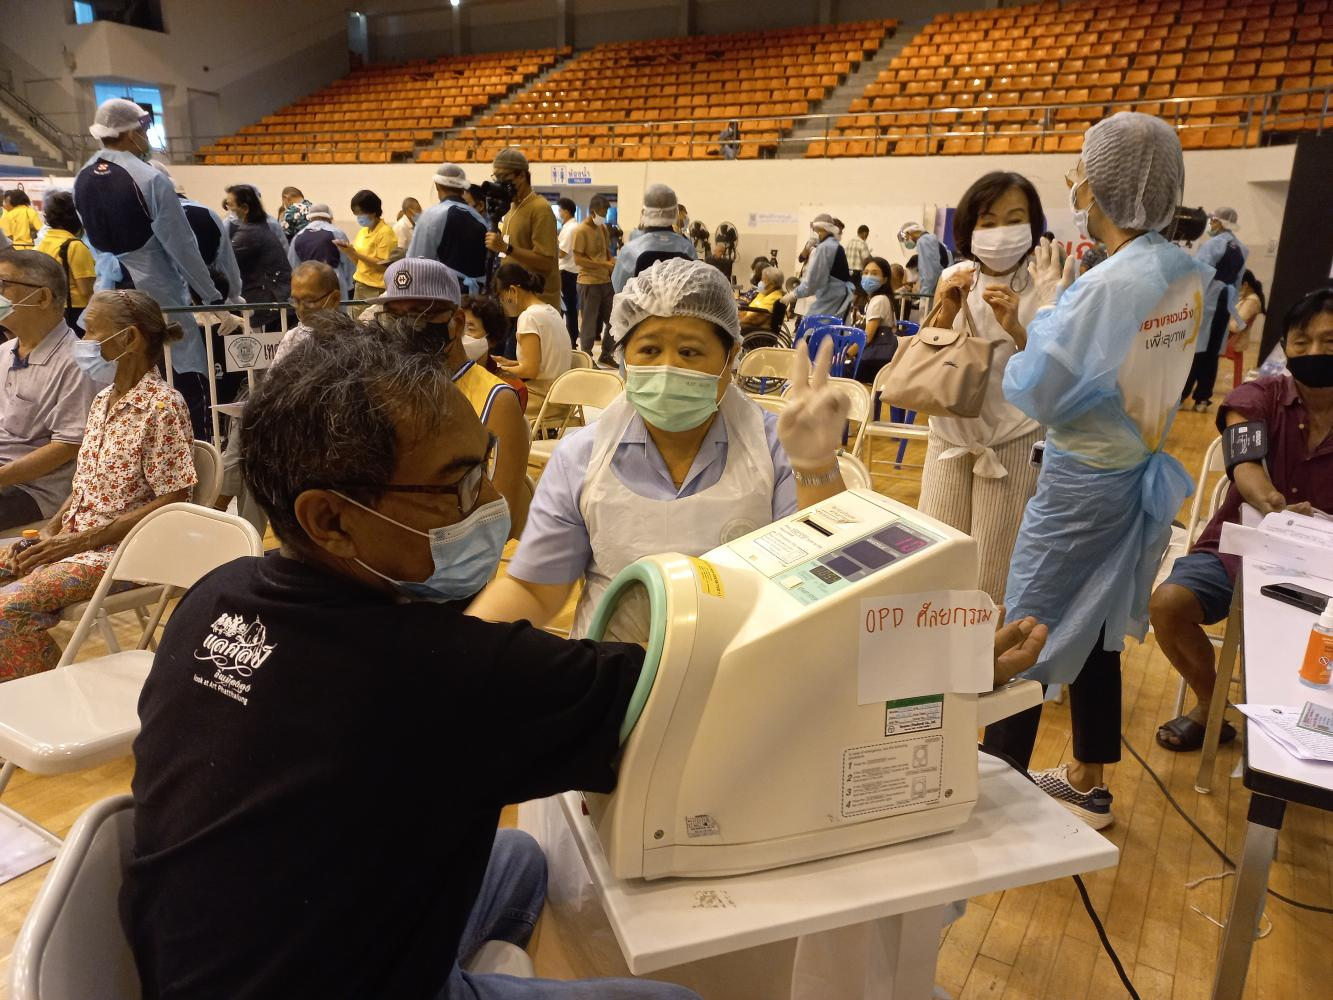 Elderly residents filled up an indoor sports stadium in Phuket on Monday as thousands rushed to receive Covid-19 vaccines. (Photo by Achadtaya Chuenniran)